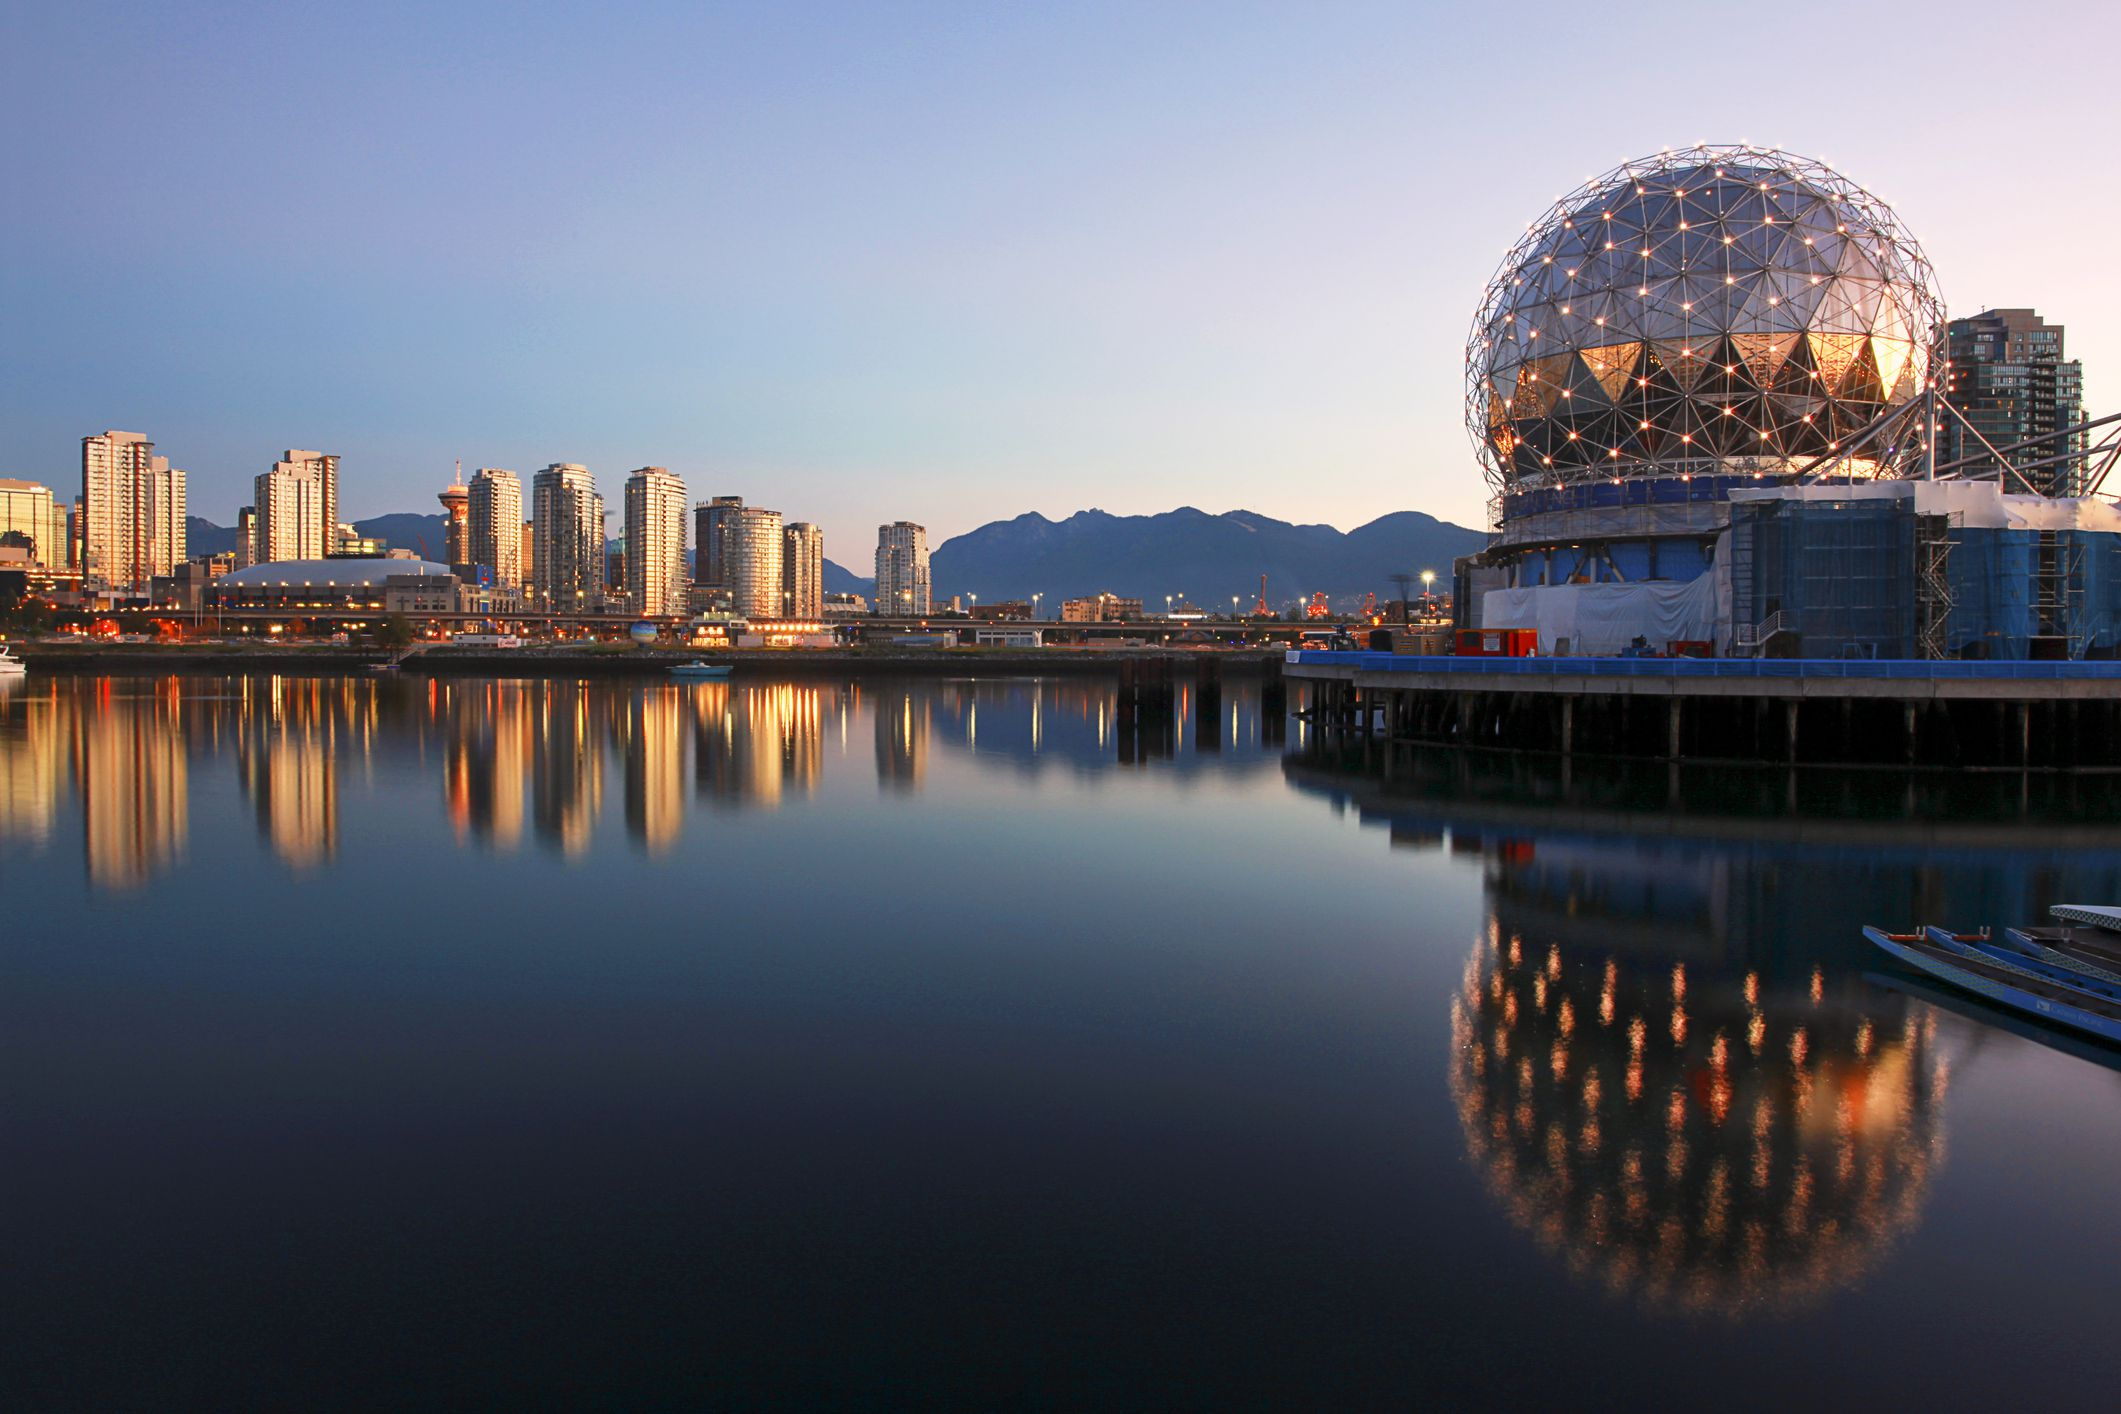 Science World. Vancouver, BC. (Cortesía de Tripsavvy)